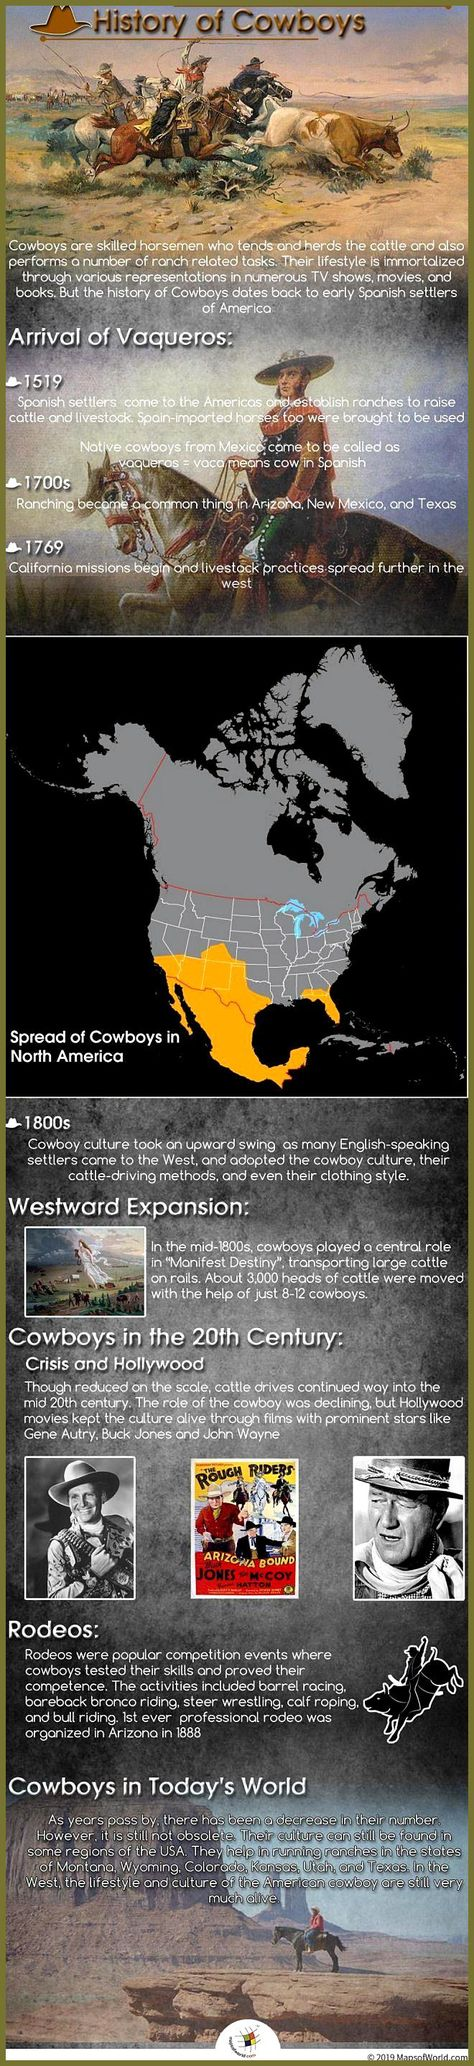 History of Cowboys American Cowboys had their own style and thus created a unique identity for themselves They also played important role in the westward expansion of the USA history The Effective Pictures We Offer You About history facts viking A quality picture can tell you many things You can find the most beautiful pictures that can be  hellip   #cowboys #egyptianhistoryfacts #history #historyfactsfunny #historyfactssocialstudies